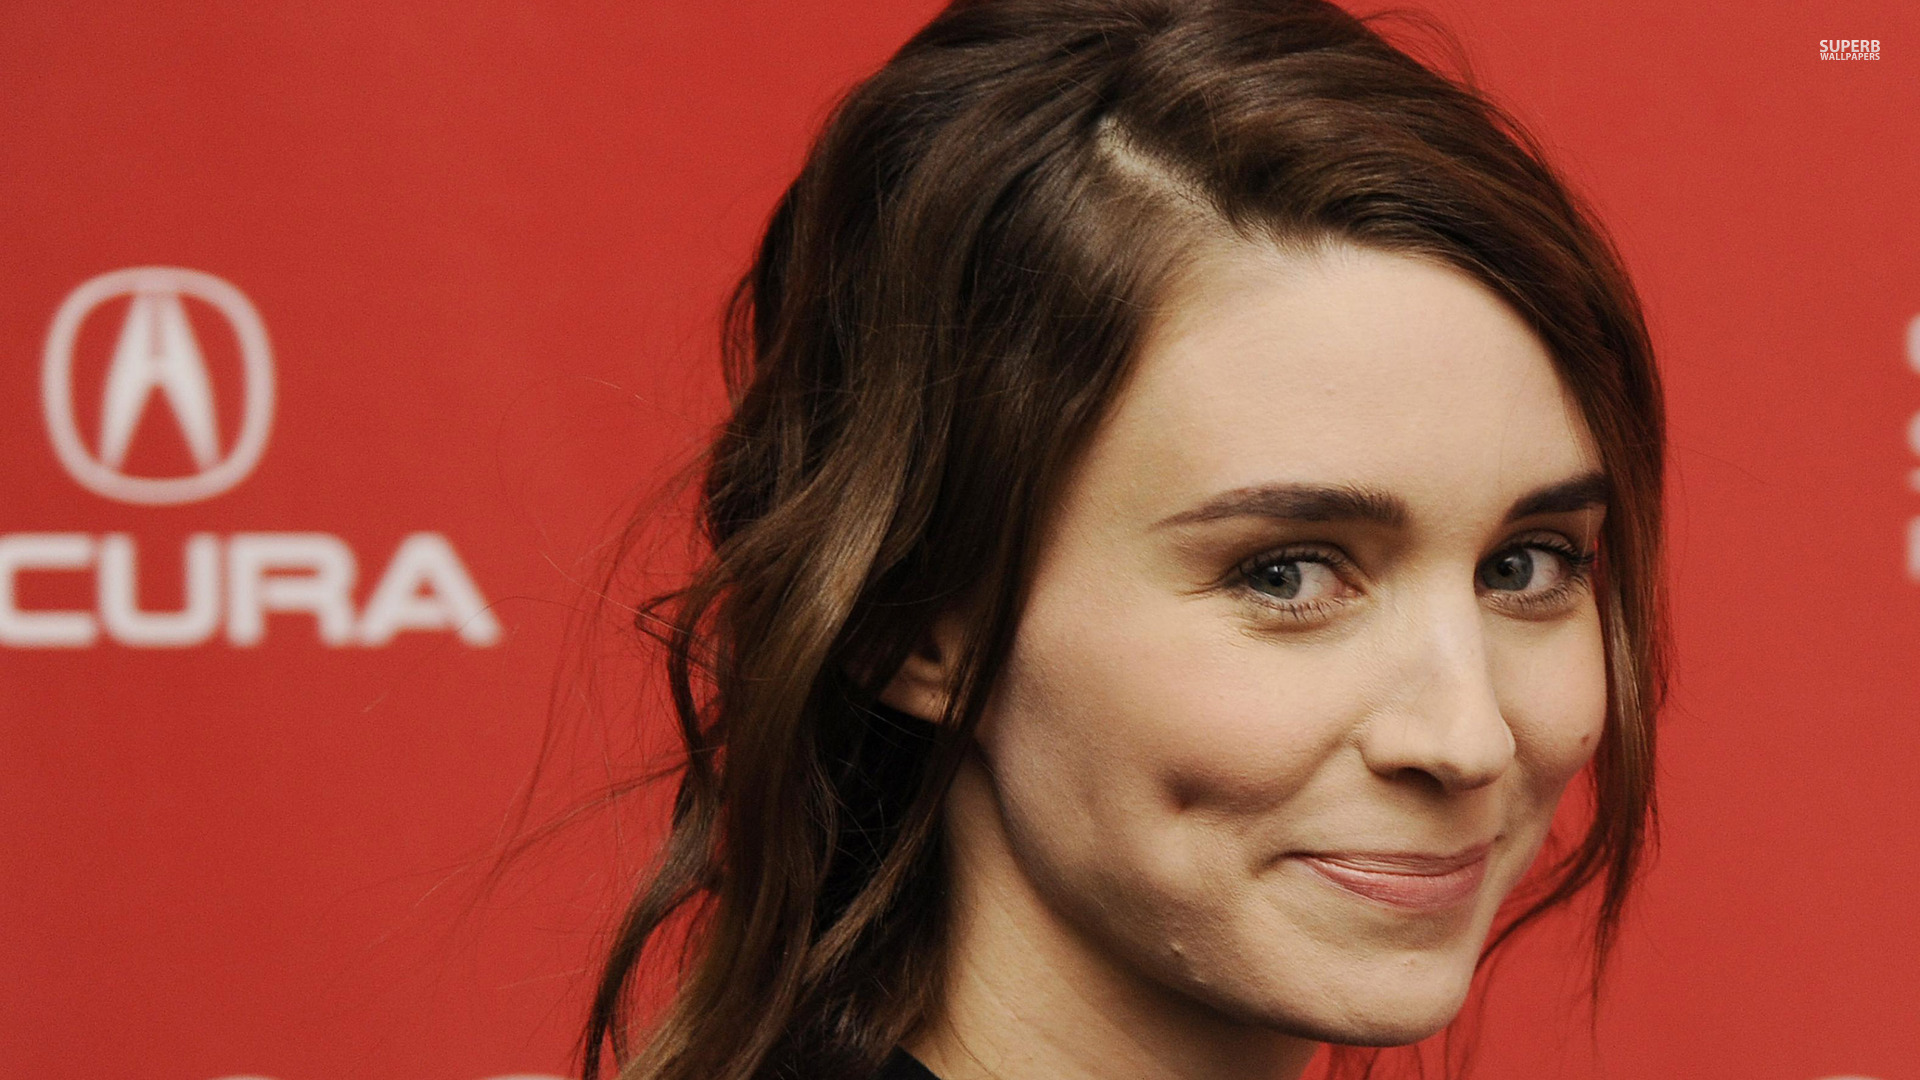 Rooney Mara wallpaper 1920x1080